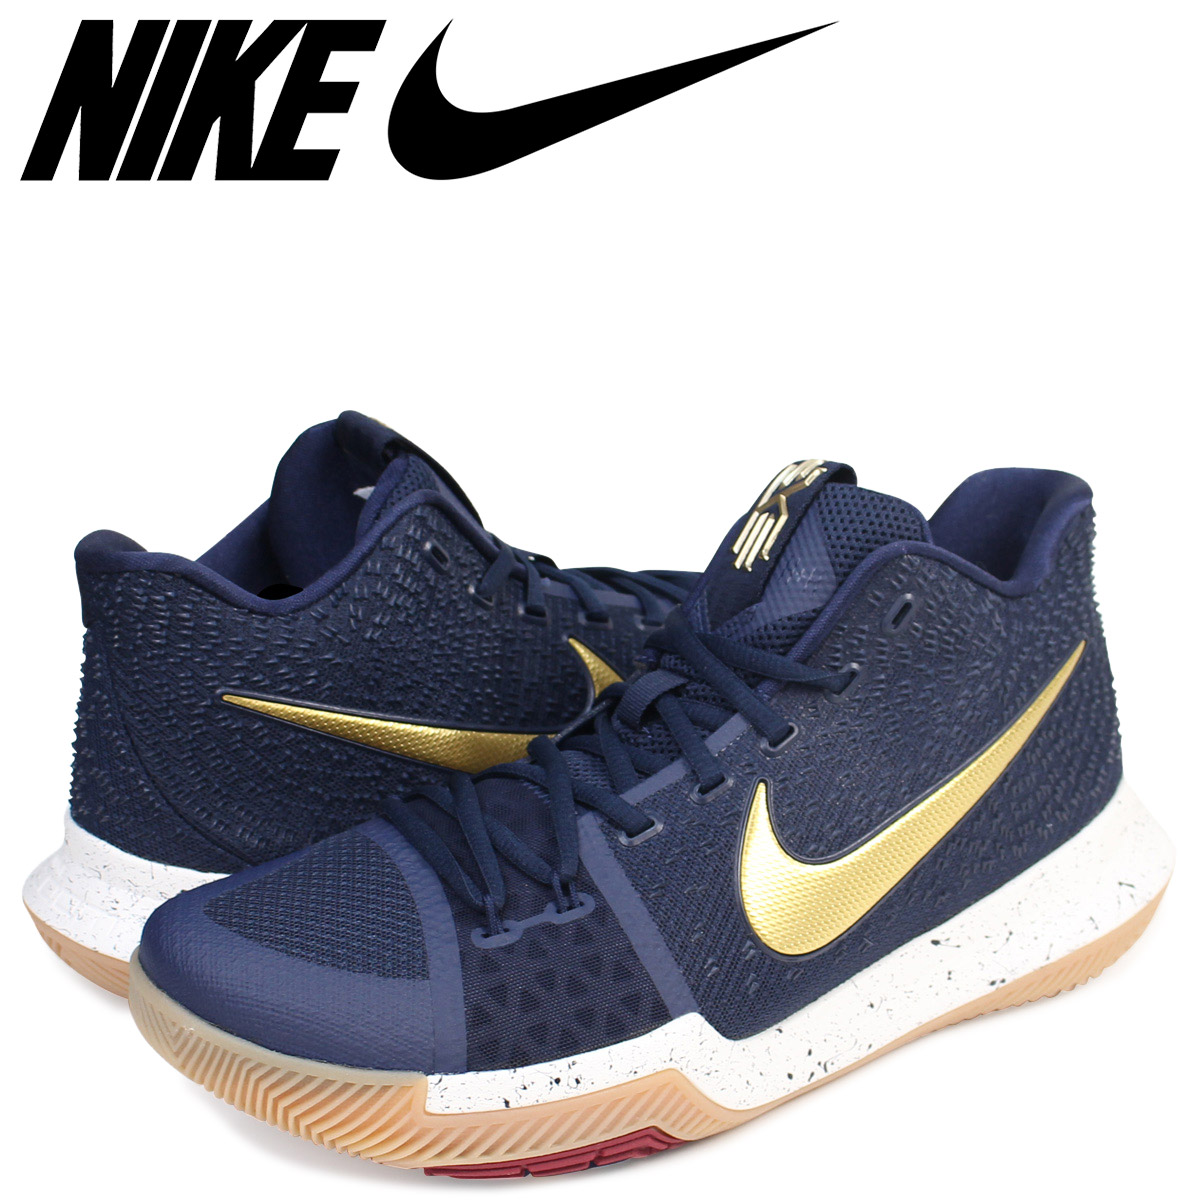 62822c34b088 Whats up Sports  Nike NIKE chi Lee 3 sneakers KYRIE 3 EP 852